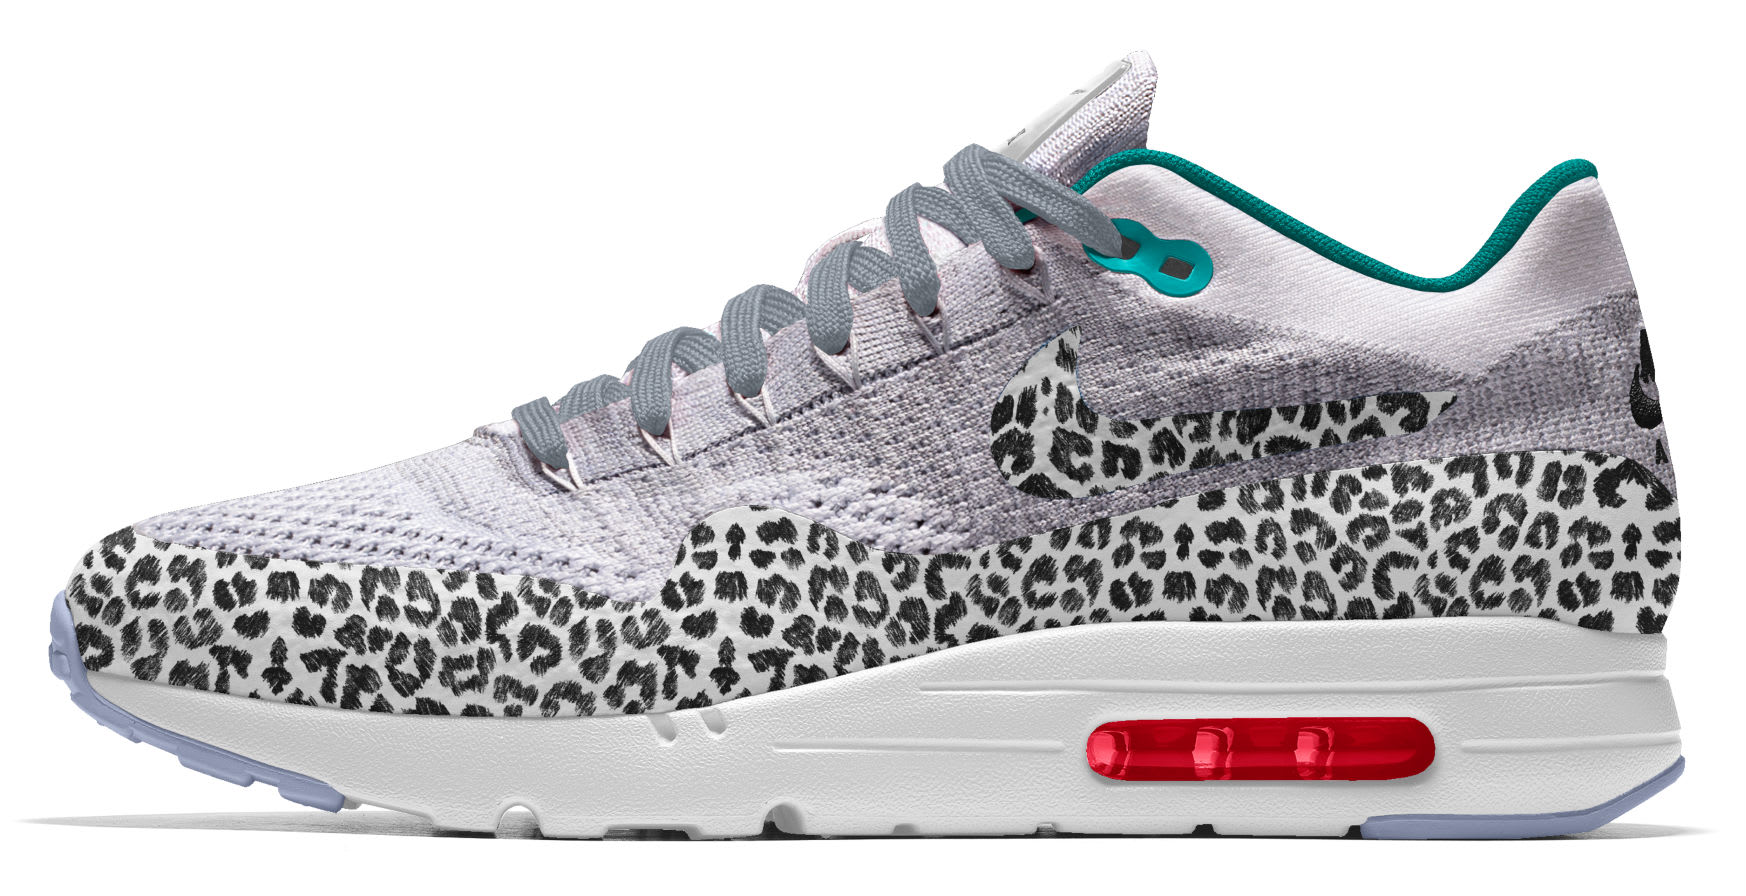 Nike iD Air Max 1 Ultra Flyknit Cheetah